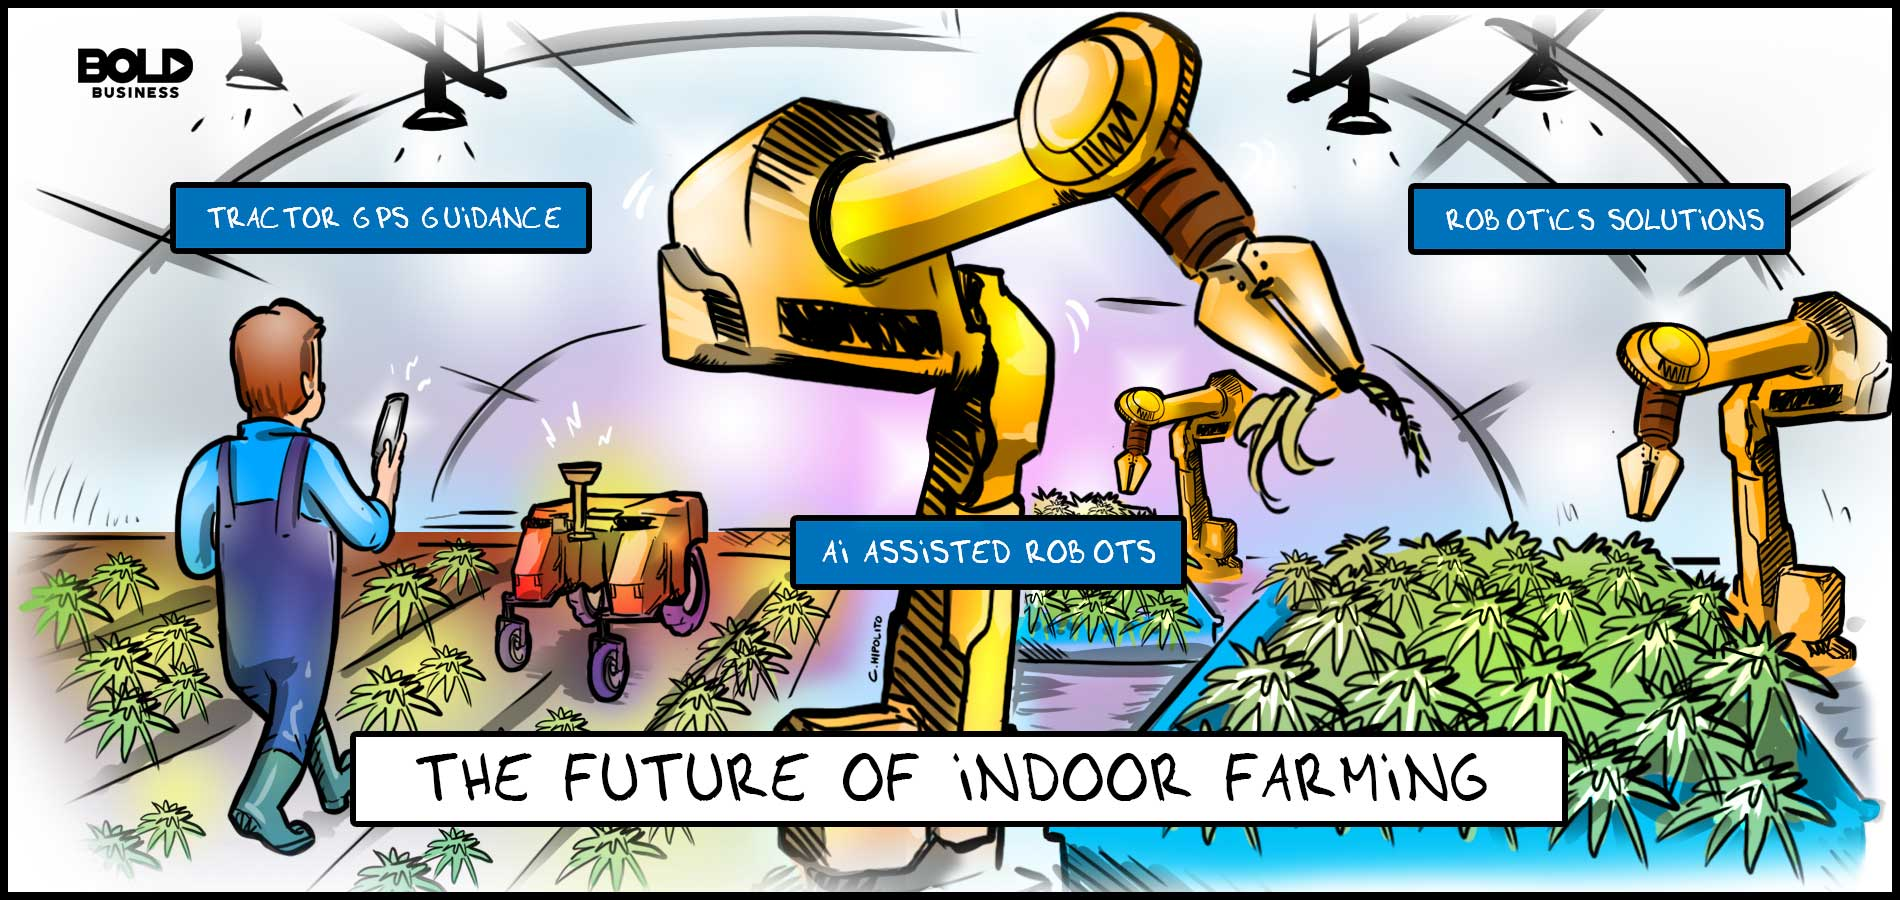 a cartoon of indoor farmer using smart technology and assisted by ai robots in farming